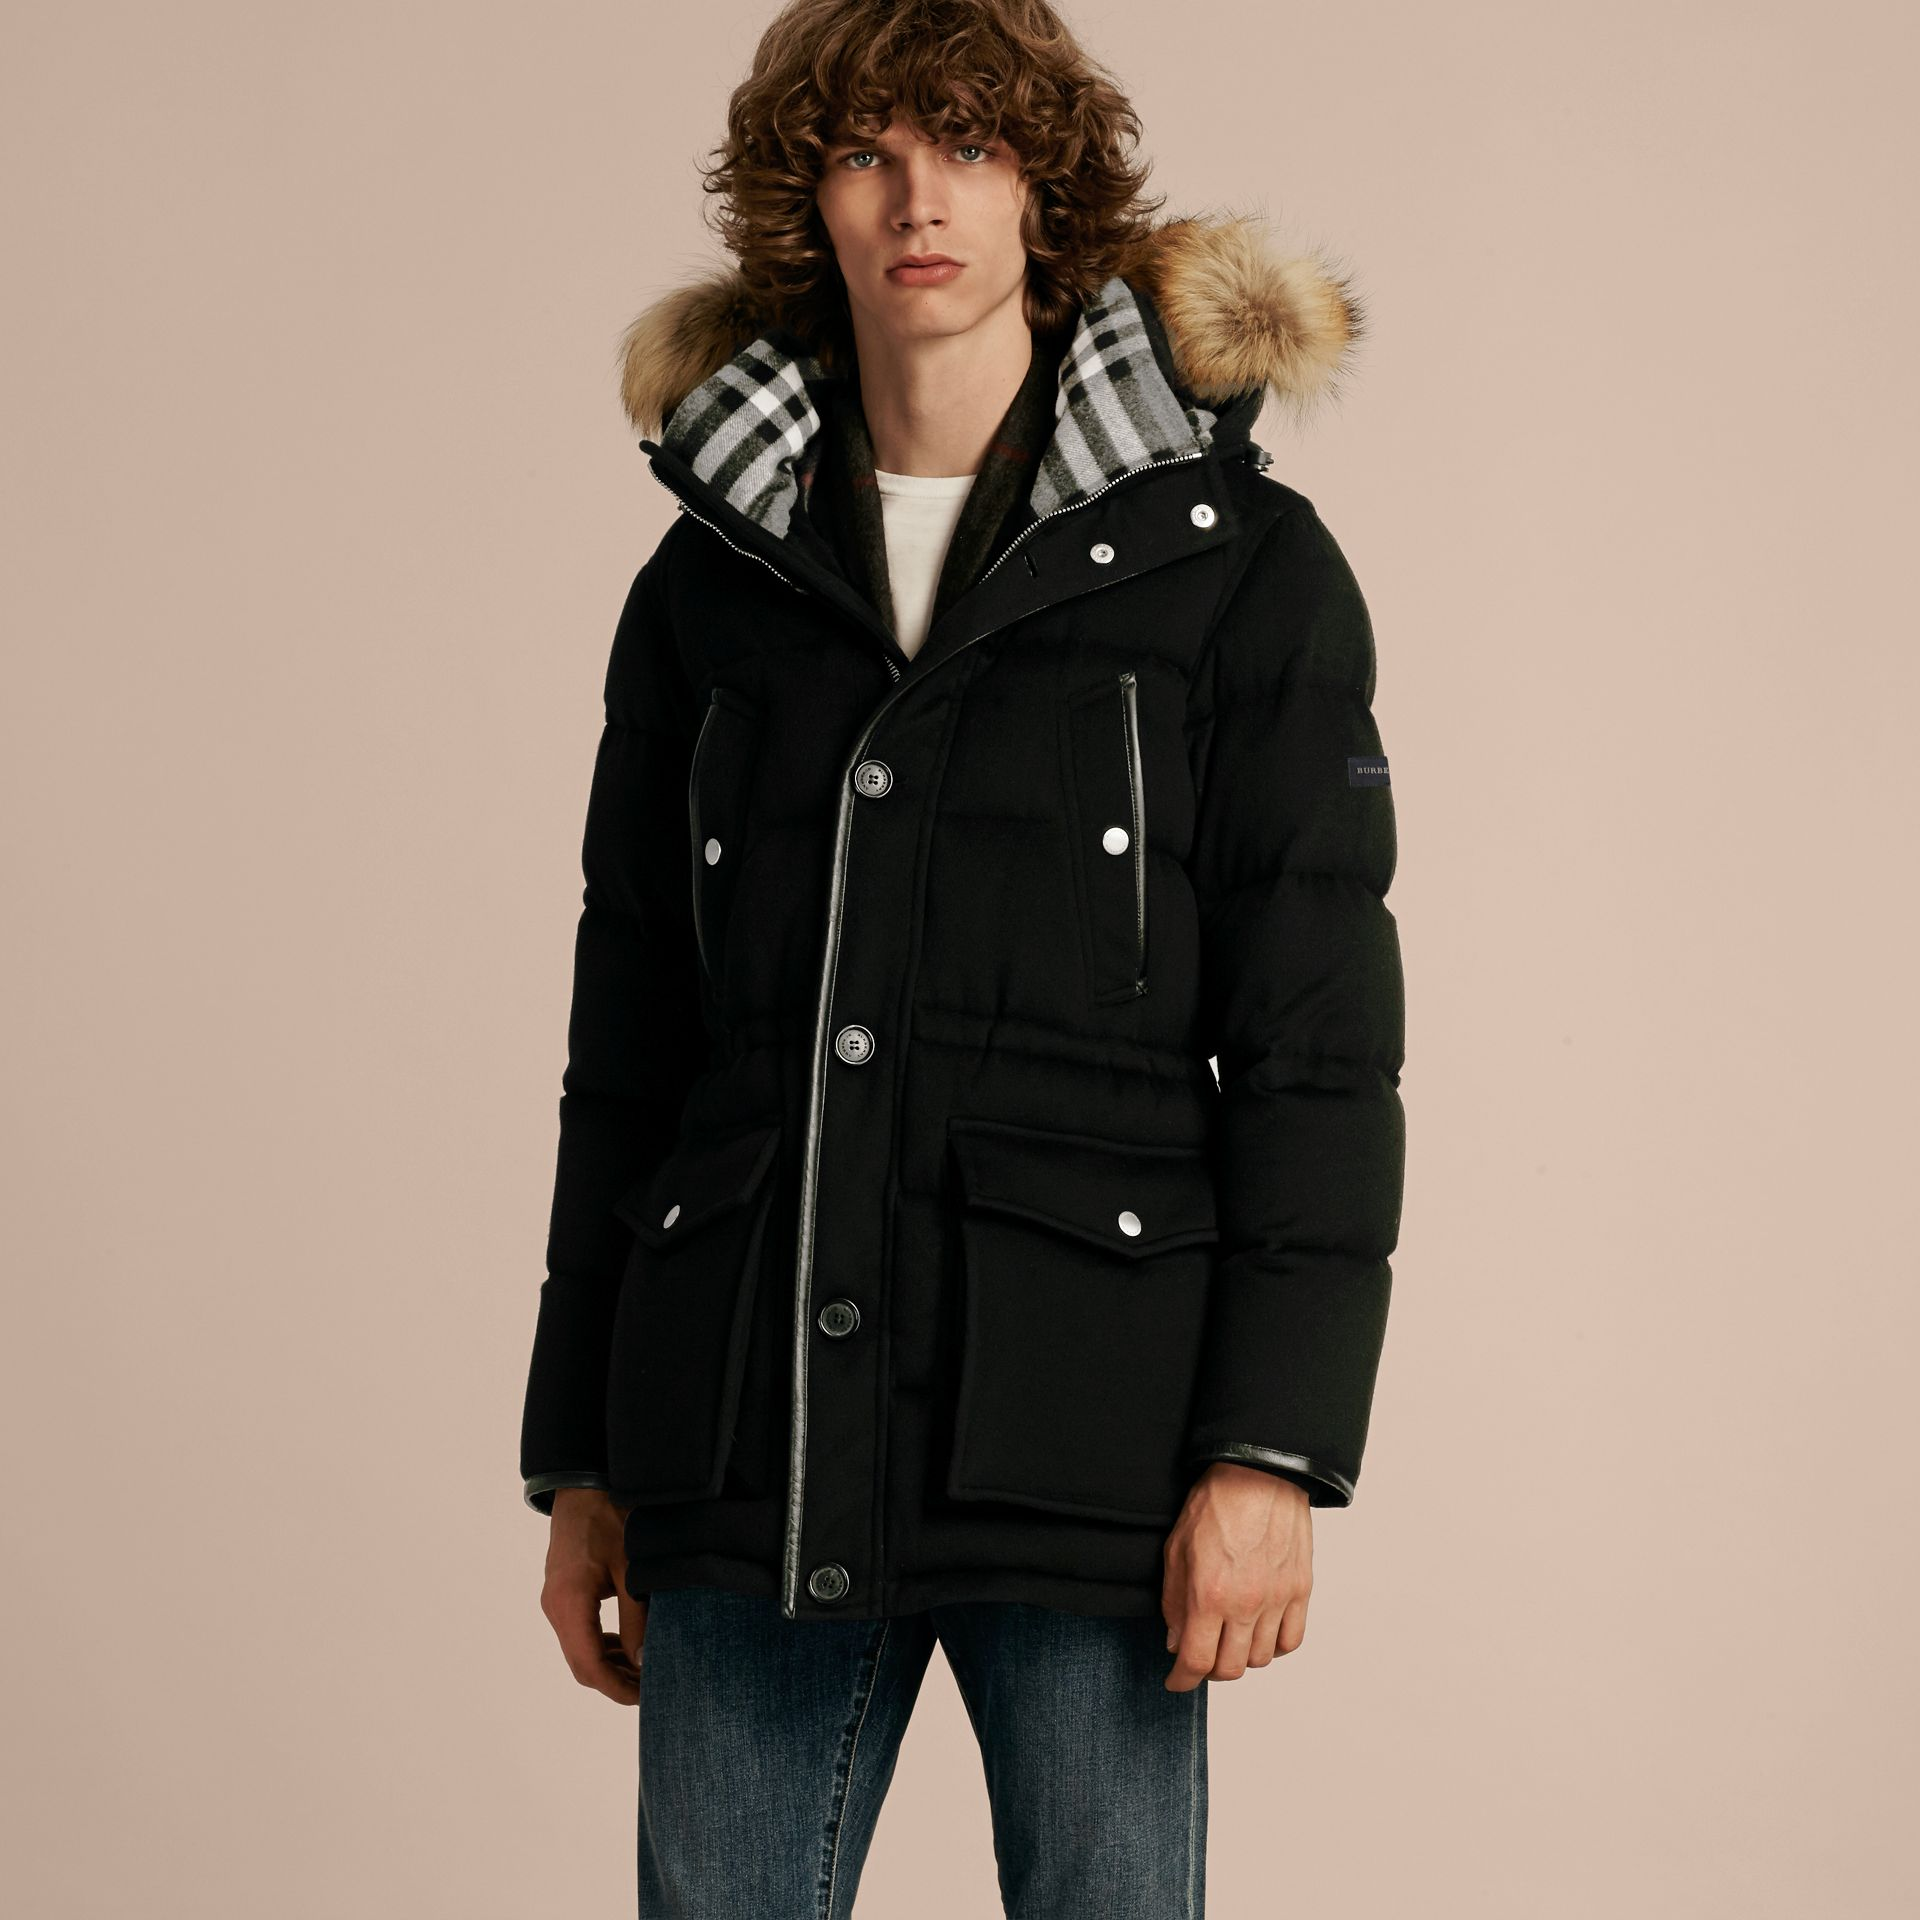 Black Down-filled Cashmere Parka with Detachable Fur Trim Black - gallery image 6